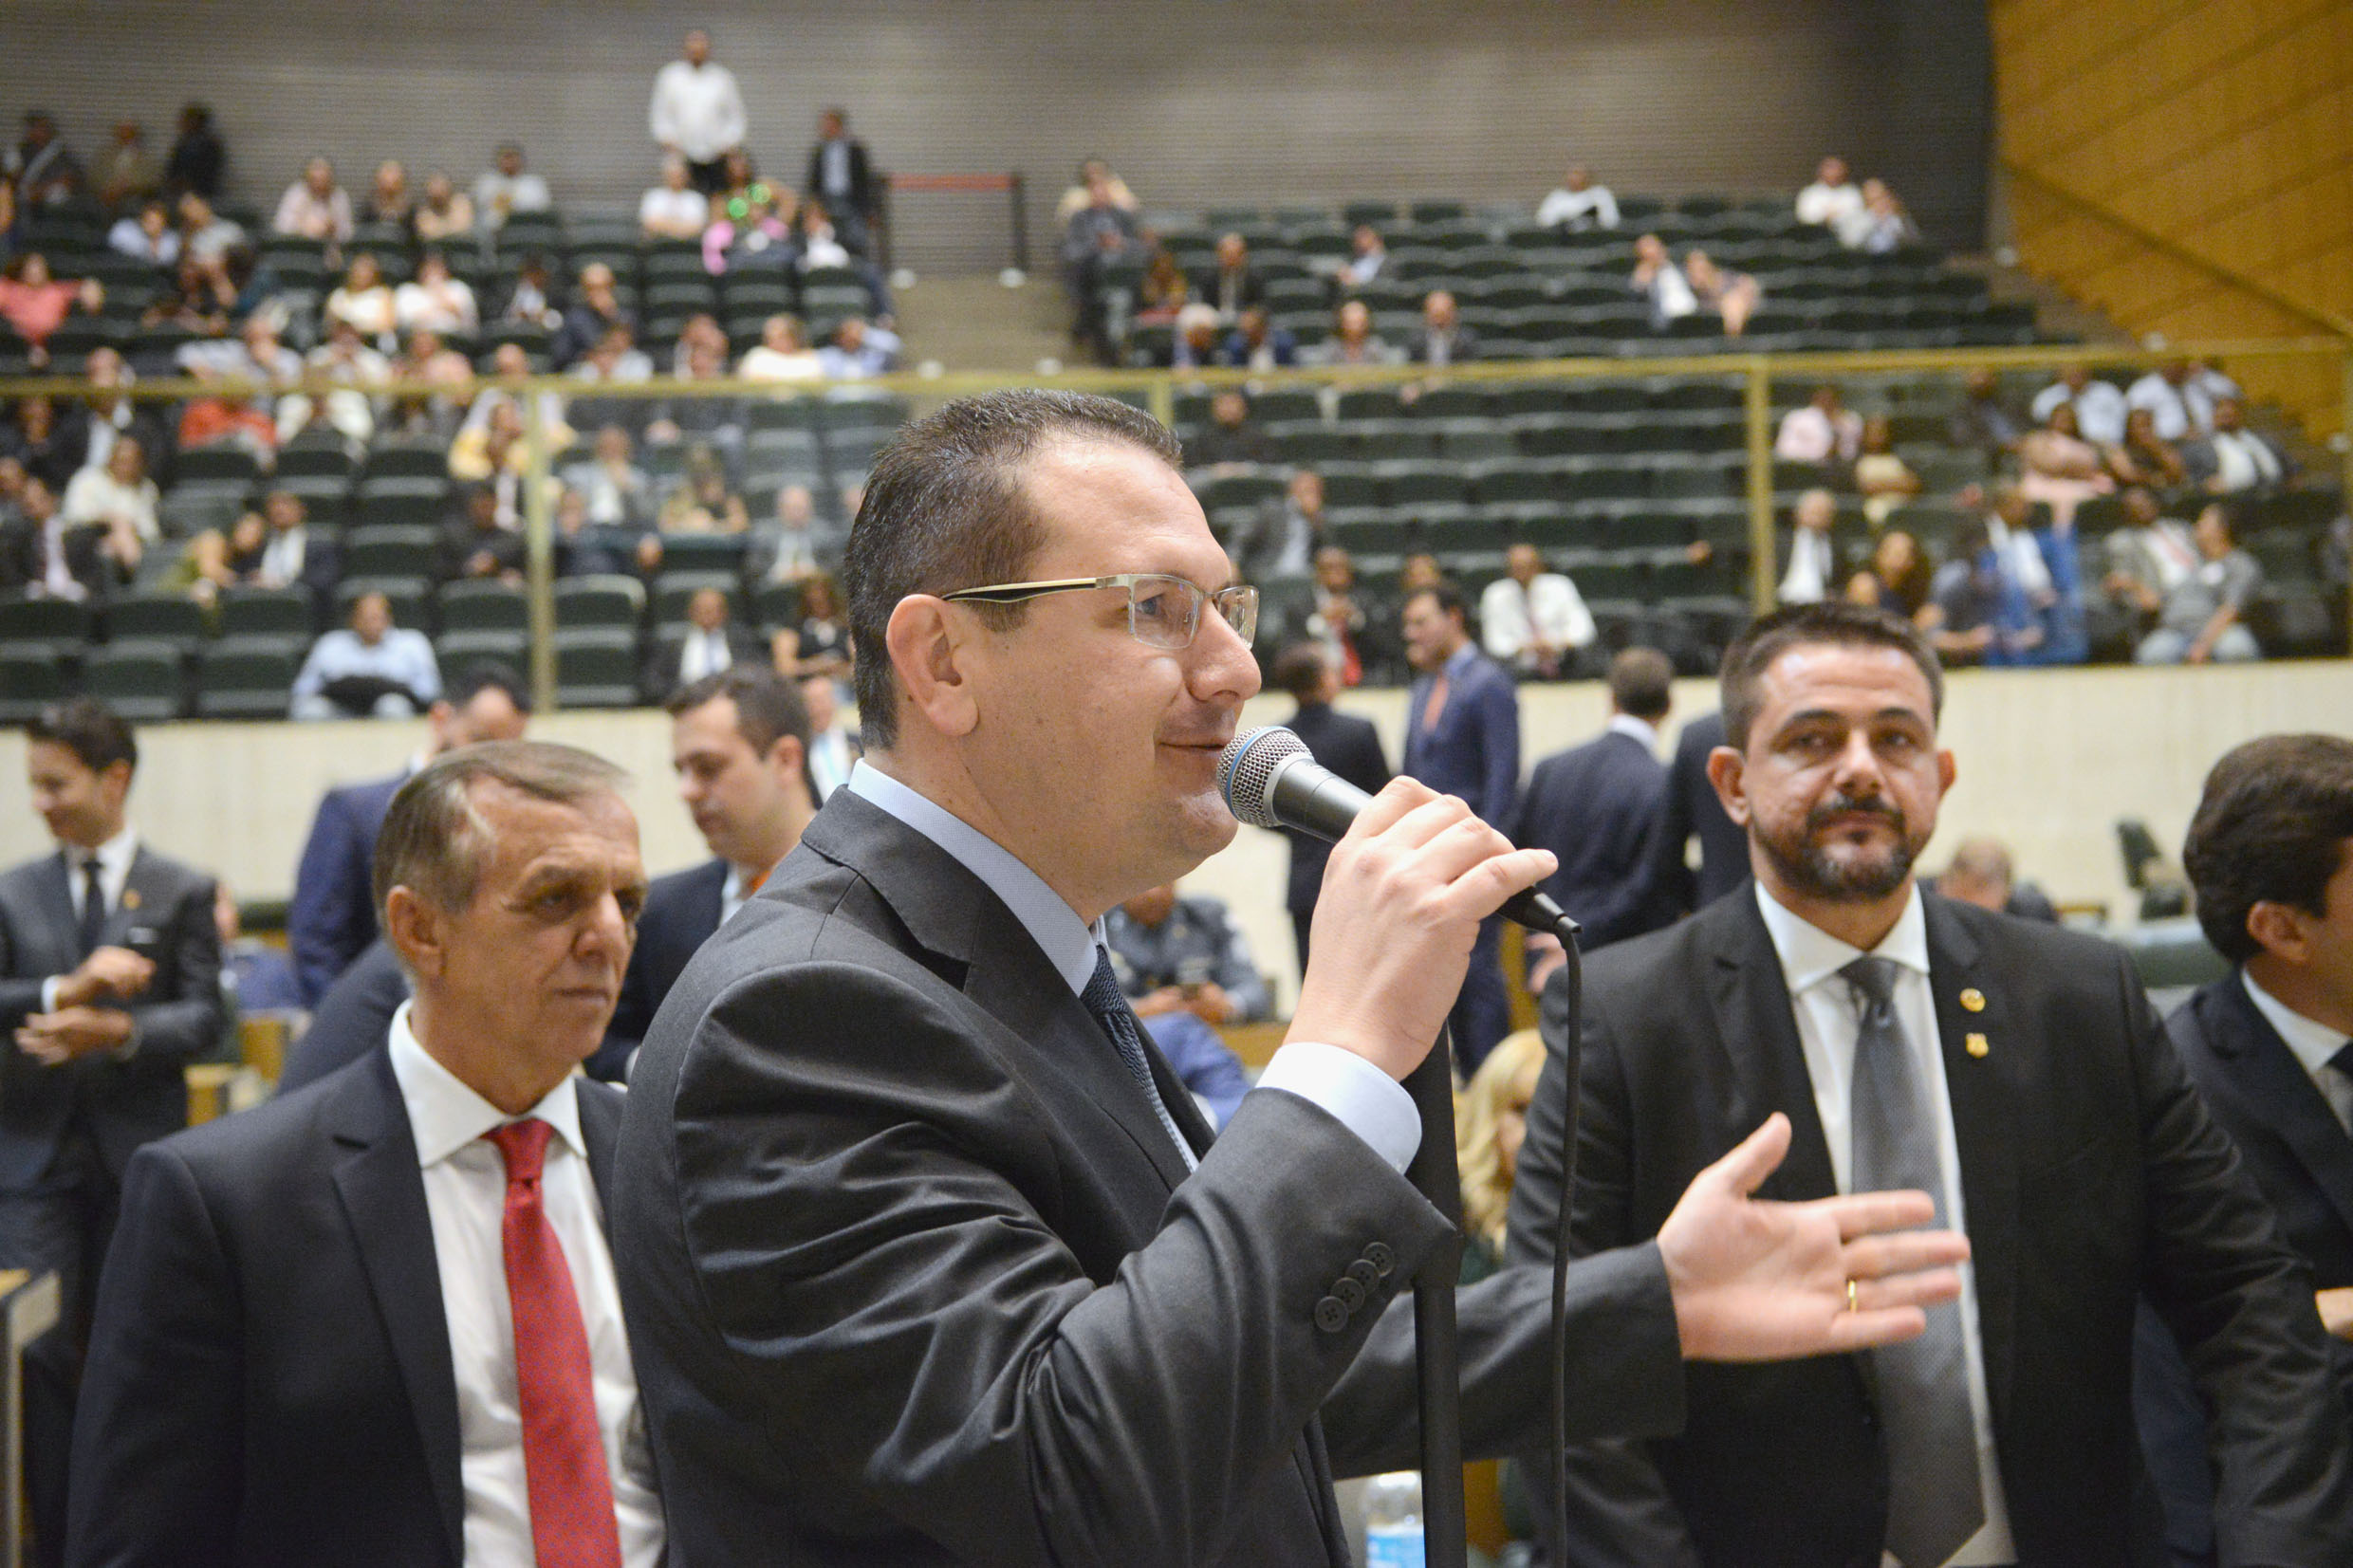 Rafa Zimbaldi (PSB)<a style='float:right' href='https://www3.al.sp.gov.br/repositorio/noticia/N-03-2019/fg231784.jpg' target=_blank><img src='/_img/material-file-download-white.png' width='14px' alt='Clique para baixar a imagem'></a>